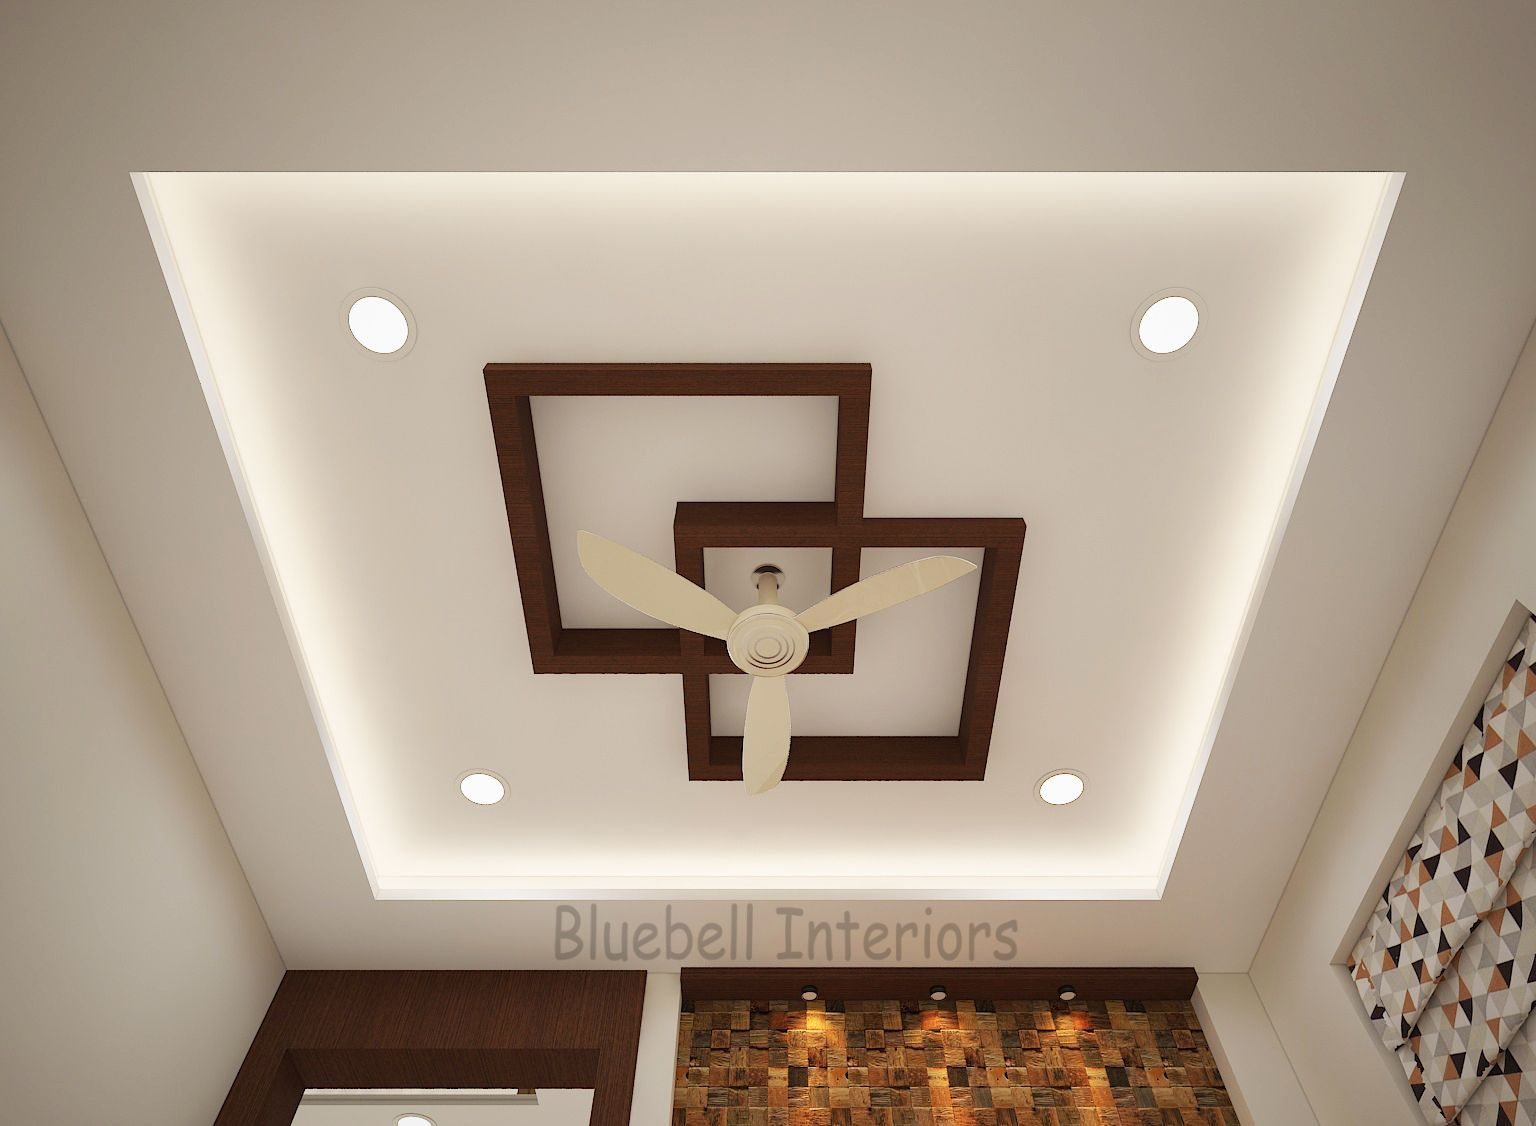 Square In Square Wooden Ceiling Drawing Room Ceiling Home Decor Blog In 2020 Ceiling Design Living Room Drawing Room Ceiling Design Ceiling Design Bedroom